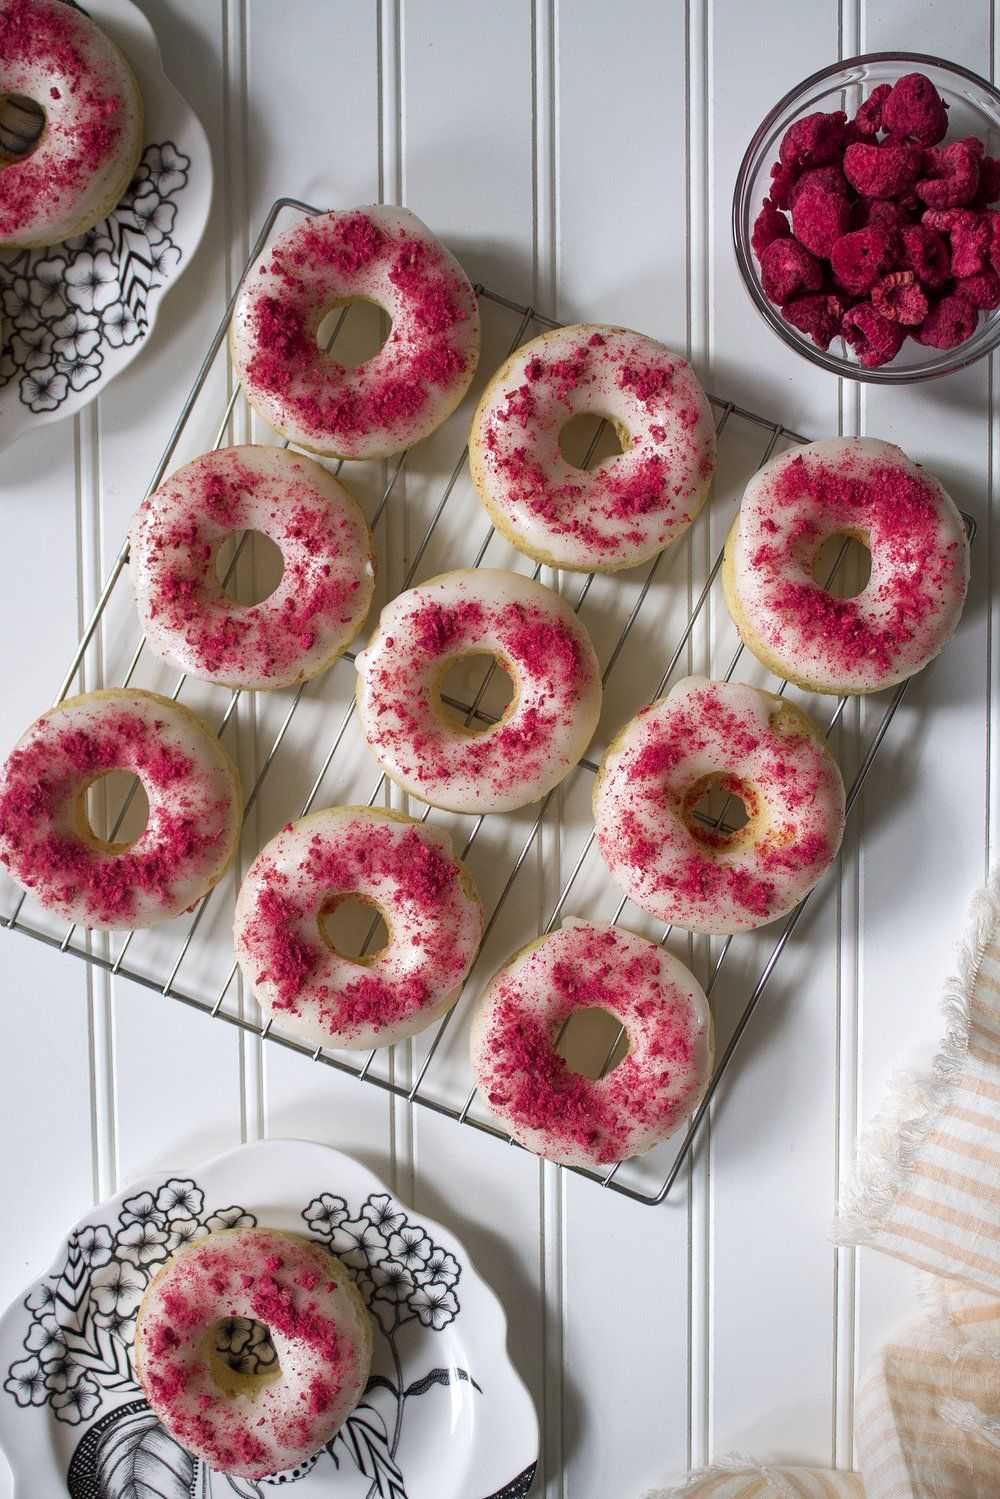 Lemon Donuts with a Raspberry Topping from UnusuallyLovely.com